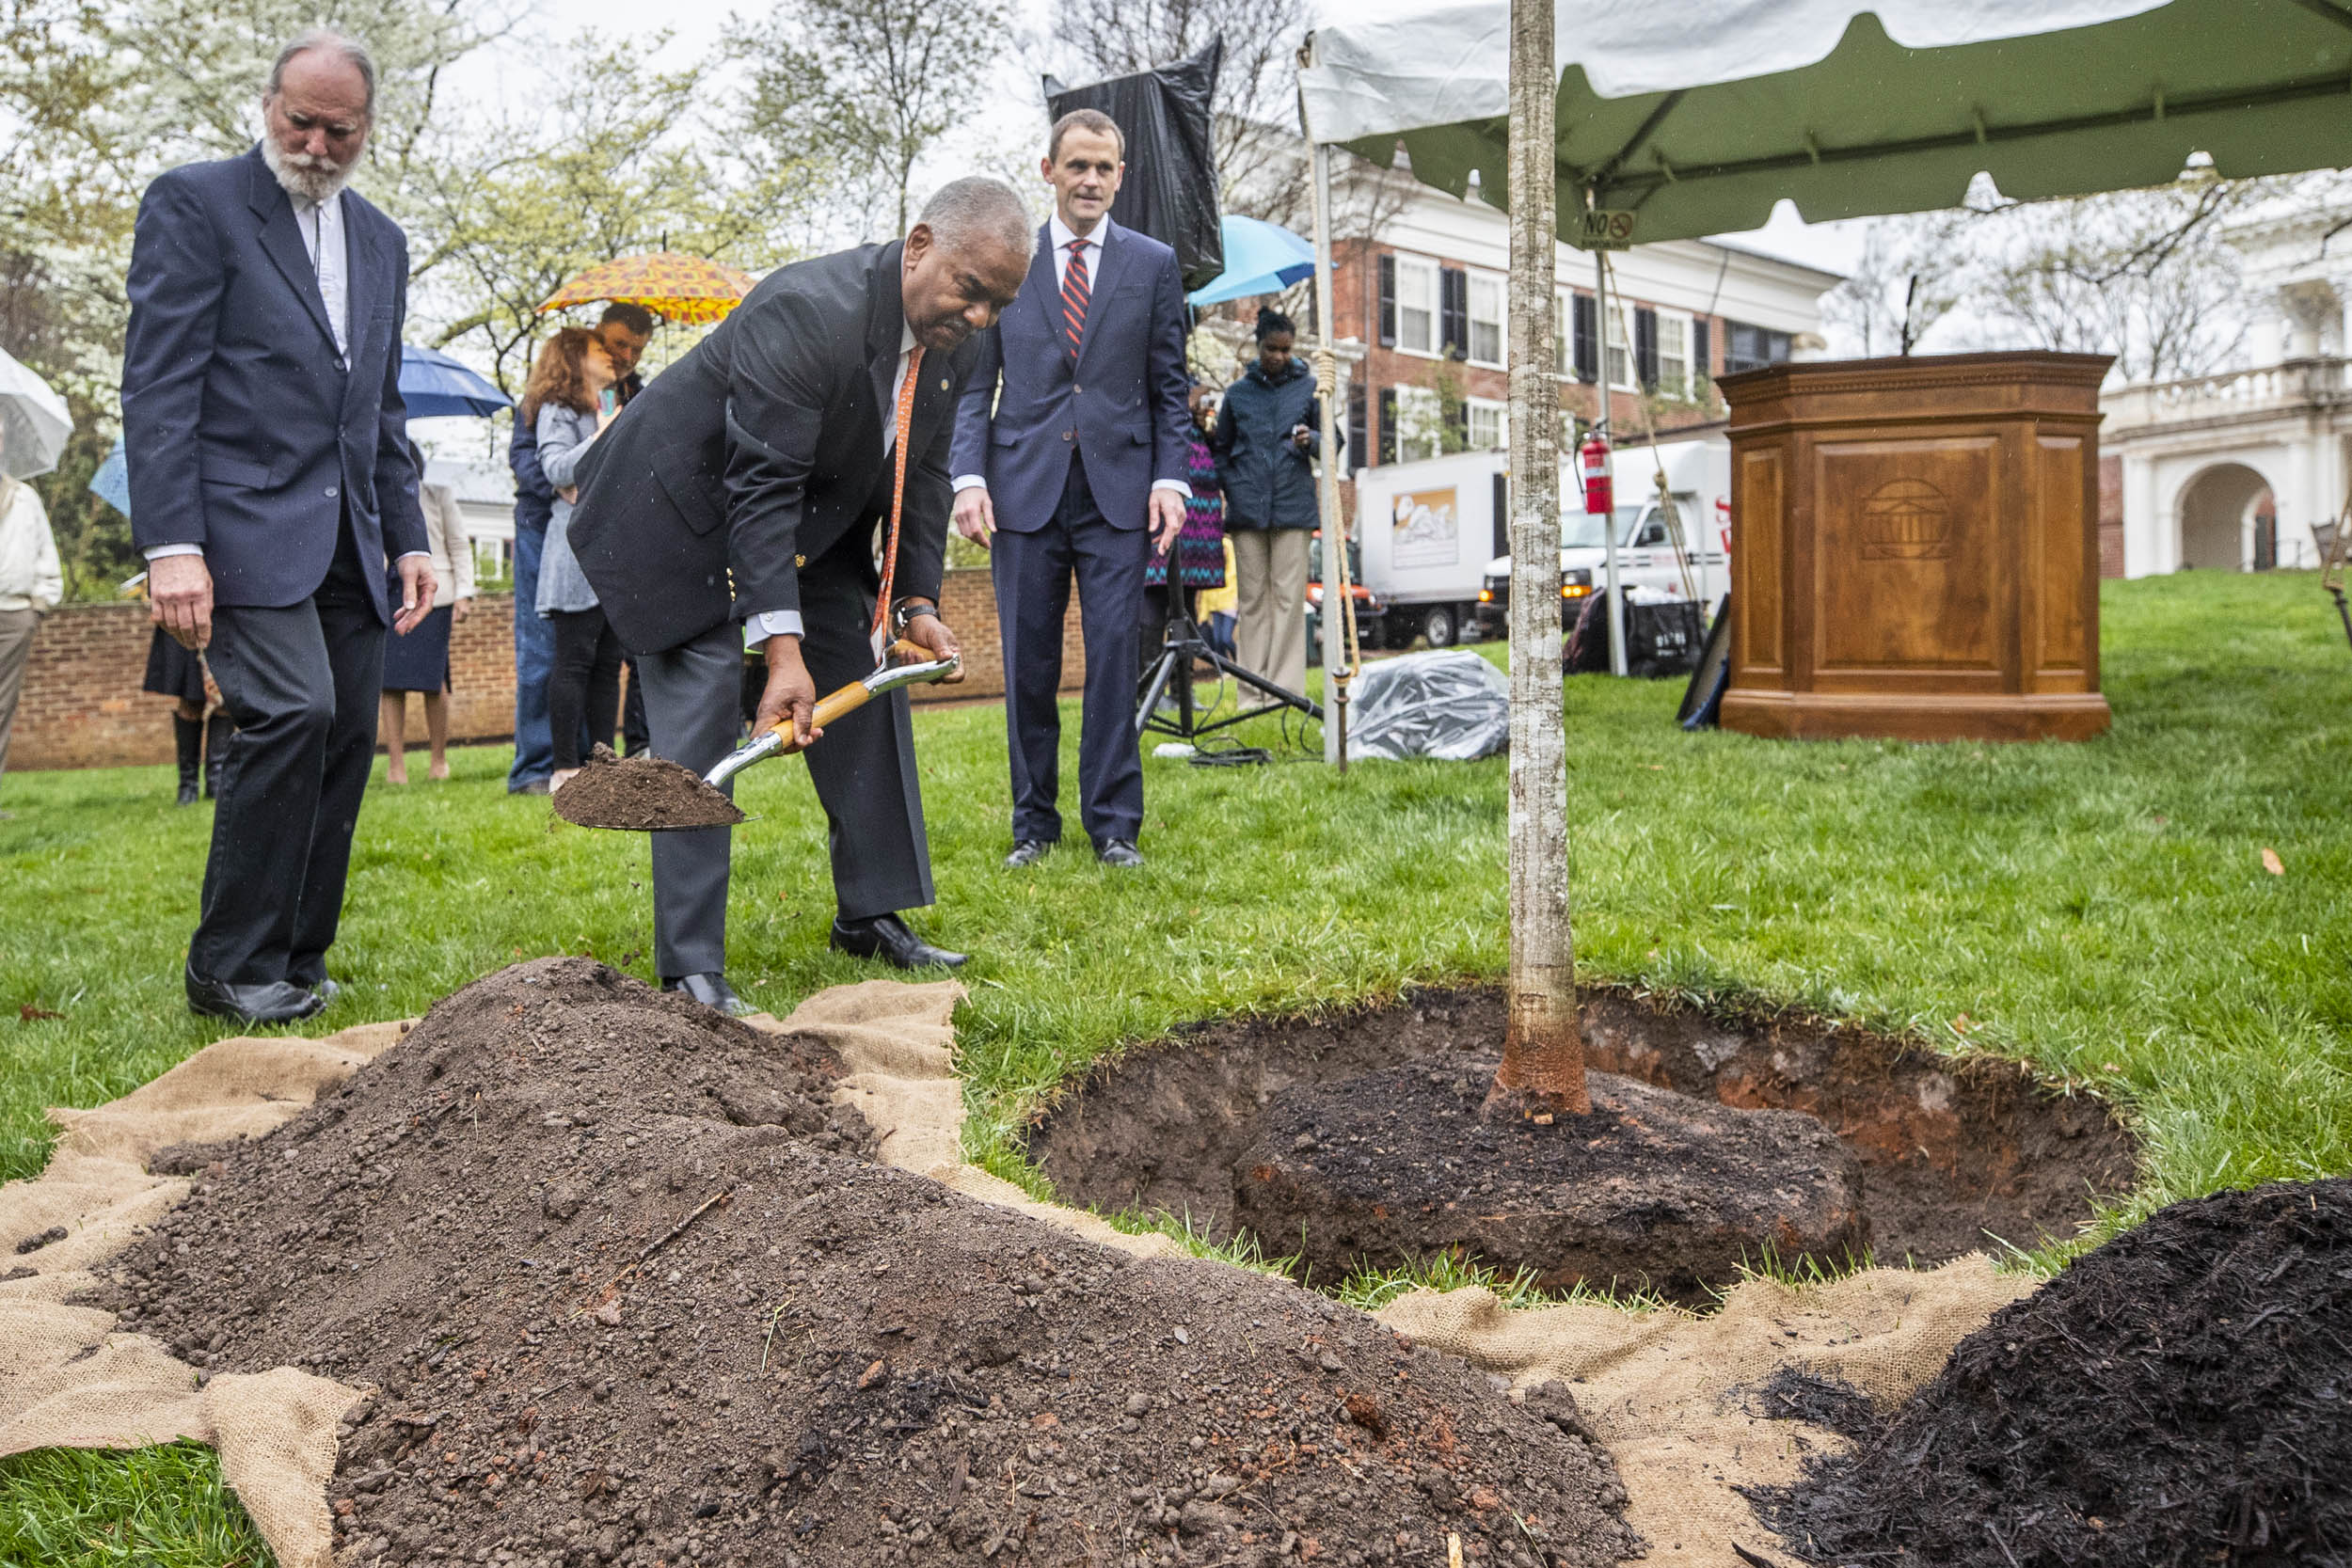 UVA President Jim Ryan presided over a tree-planting ceremony in honor of Dr. Marcus L. Martin, shown here.